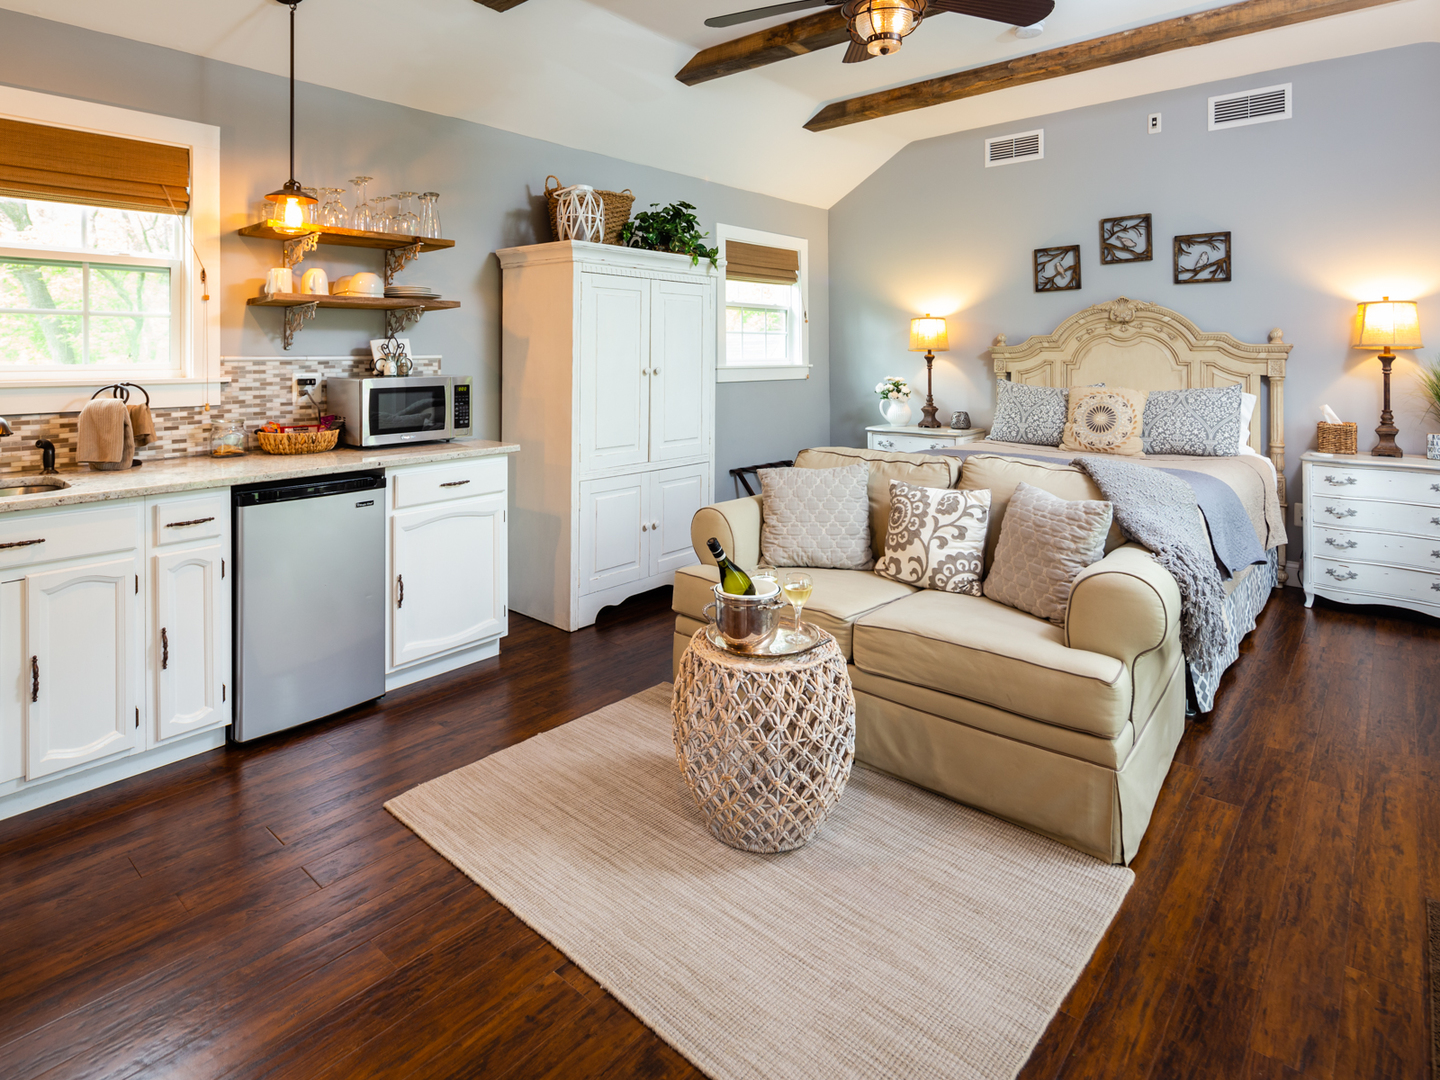 A living room filled with furniture and a wood floor at Airwell Bed and Breakfast.